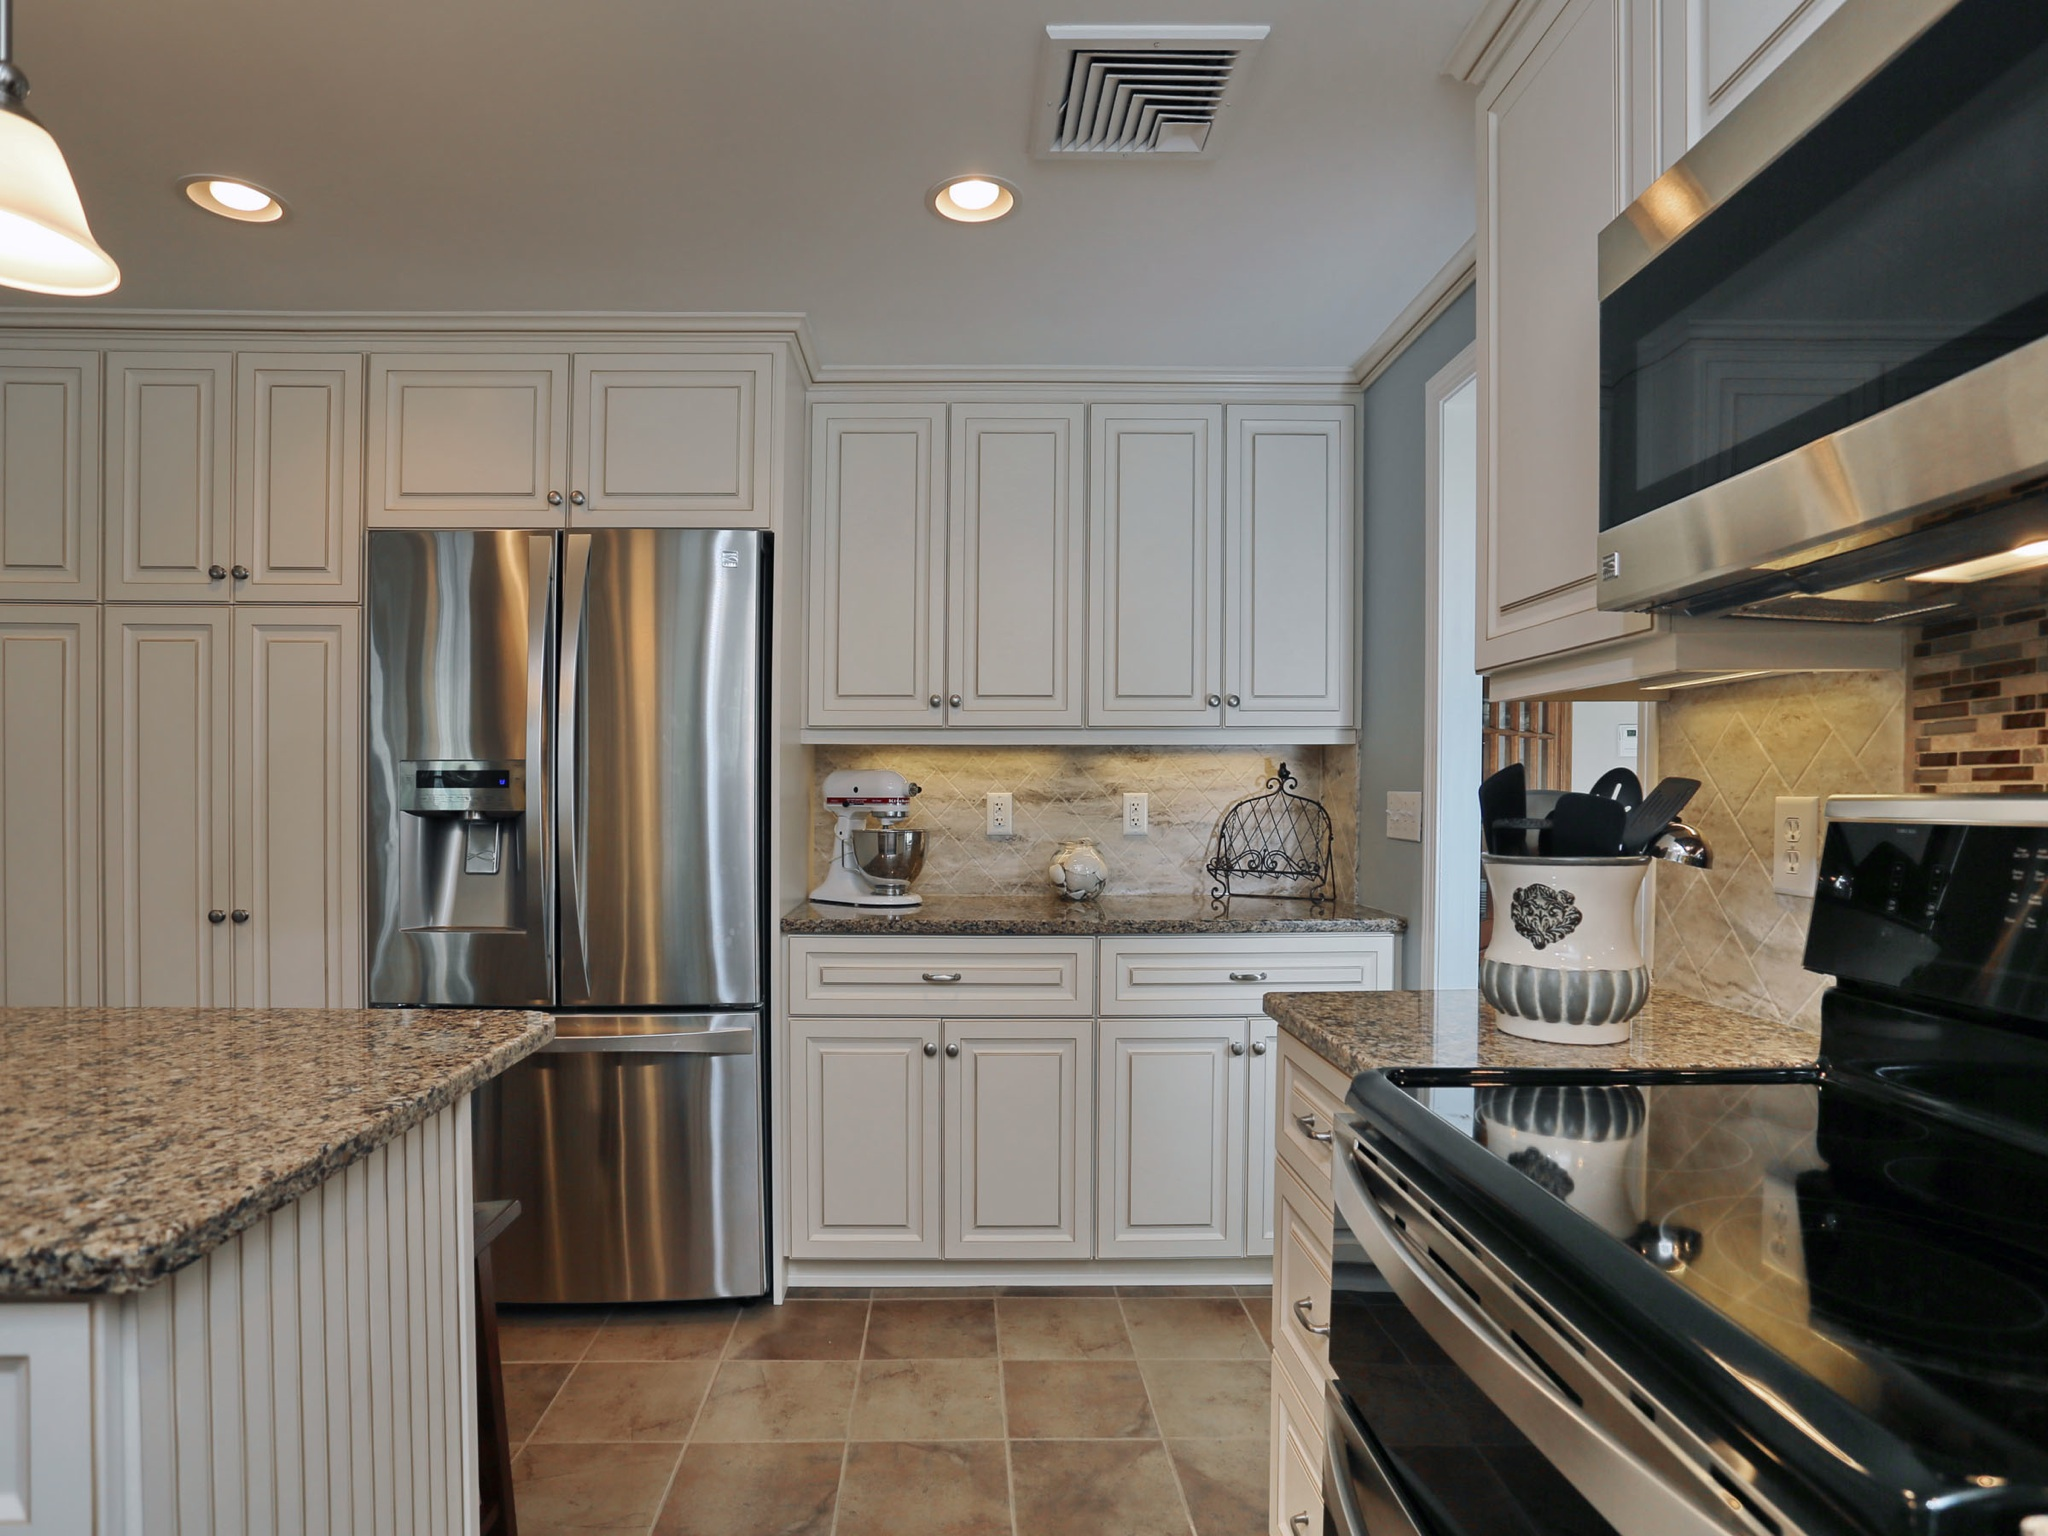 Kitchen Light Rails: How to Improve Your Vision in the Kitchen